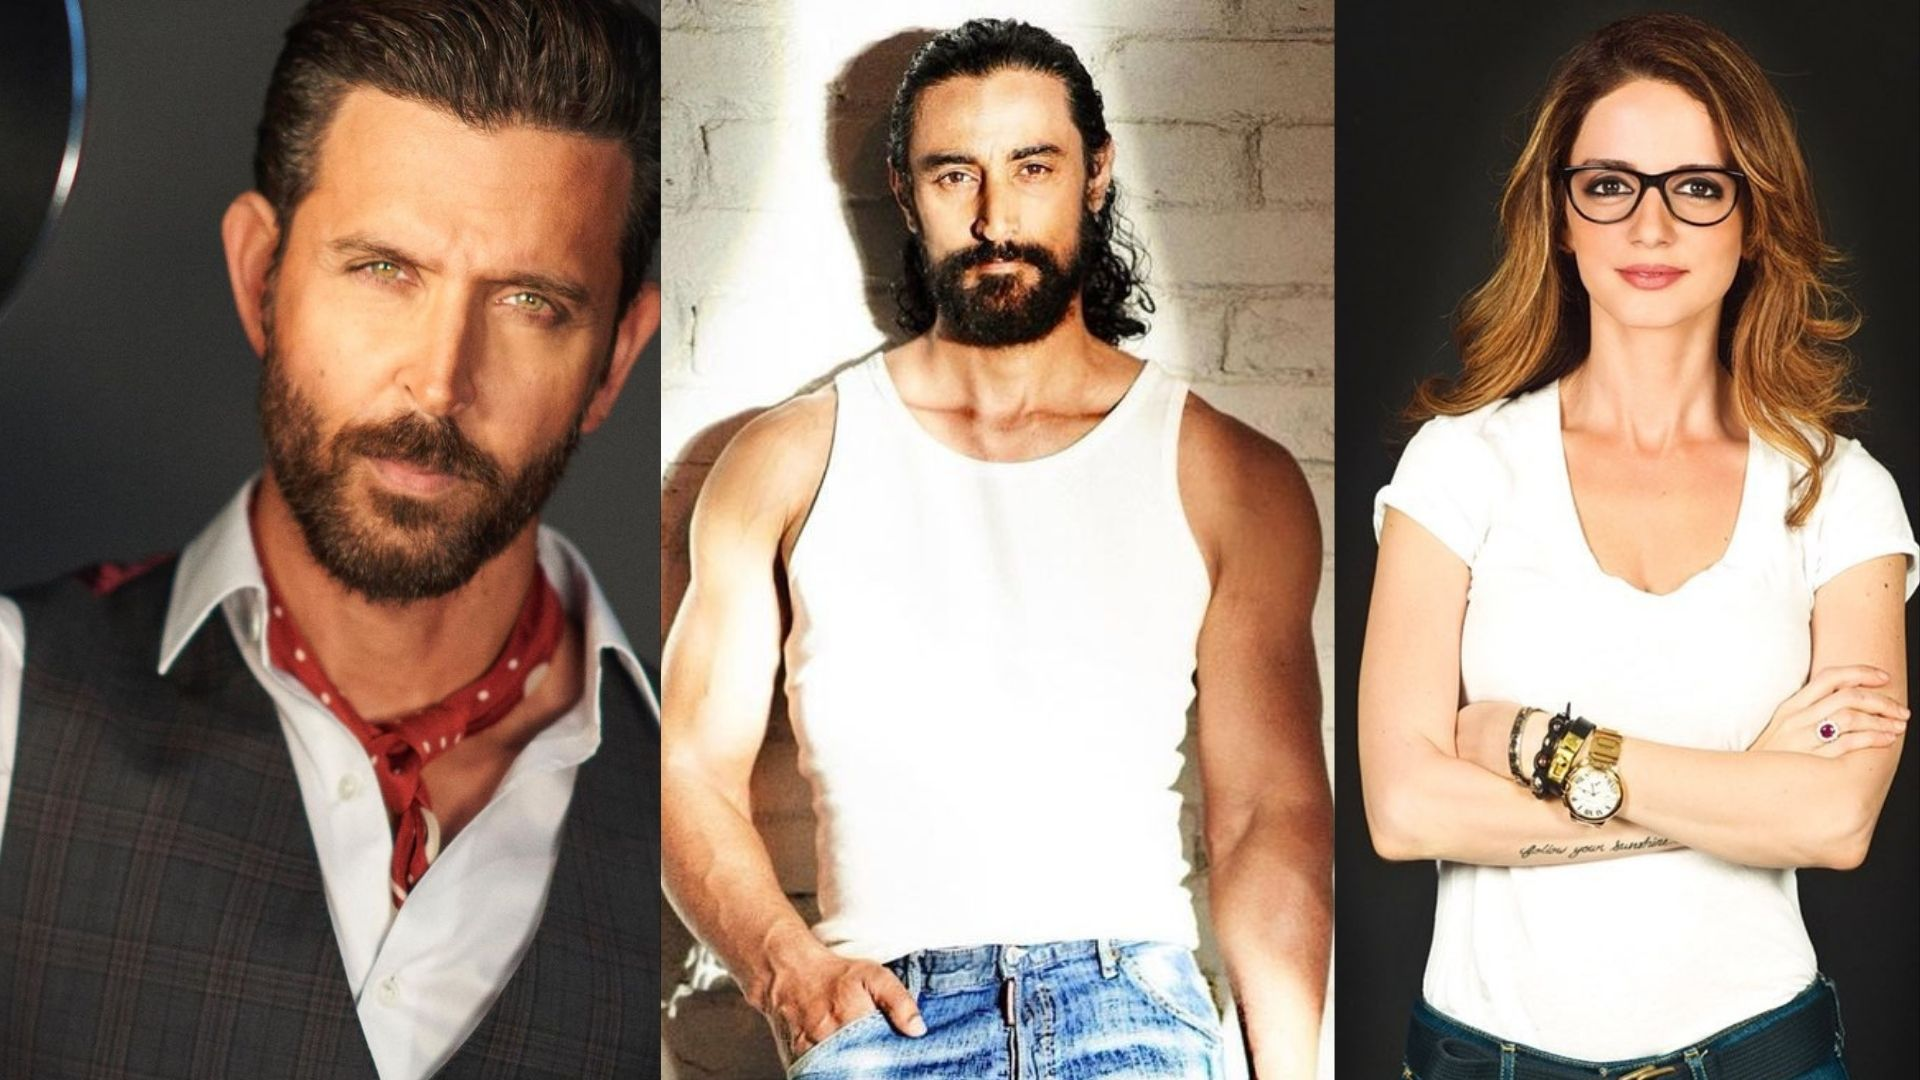 Hrithik Roshan Pens Hilarious Message For His Friend Kunal Kapoor On His Birthday; Sussanne Khan Shares Post On Her IG – SEE PICS